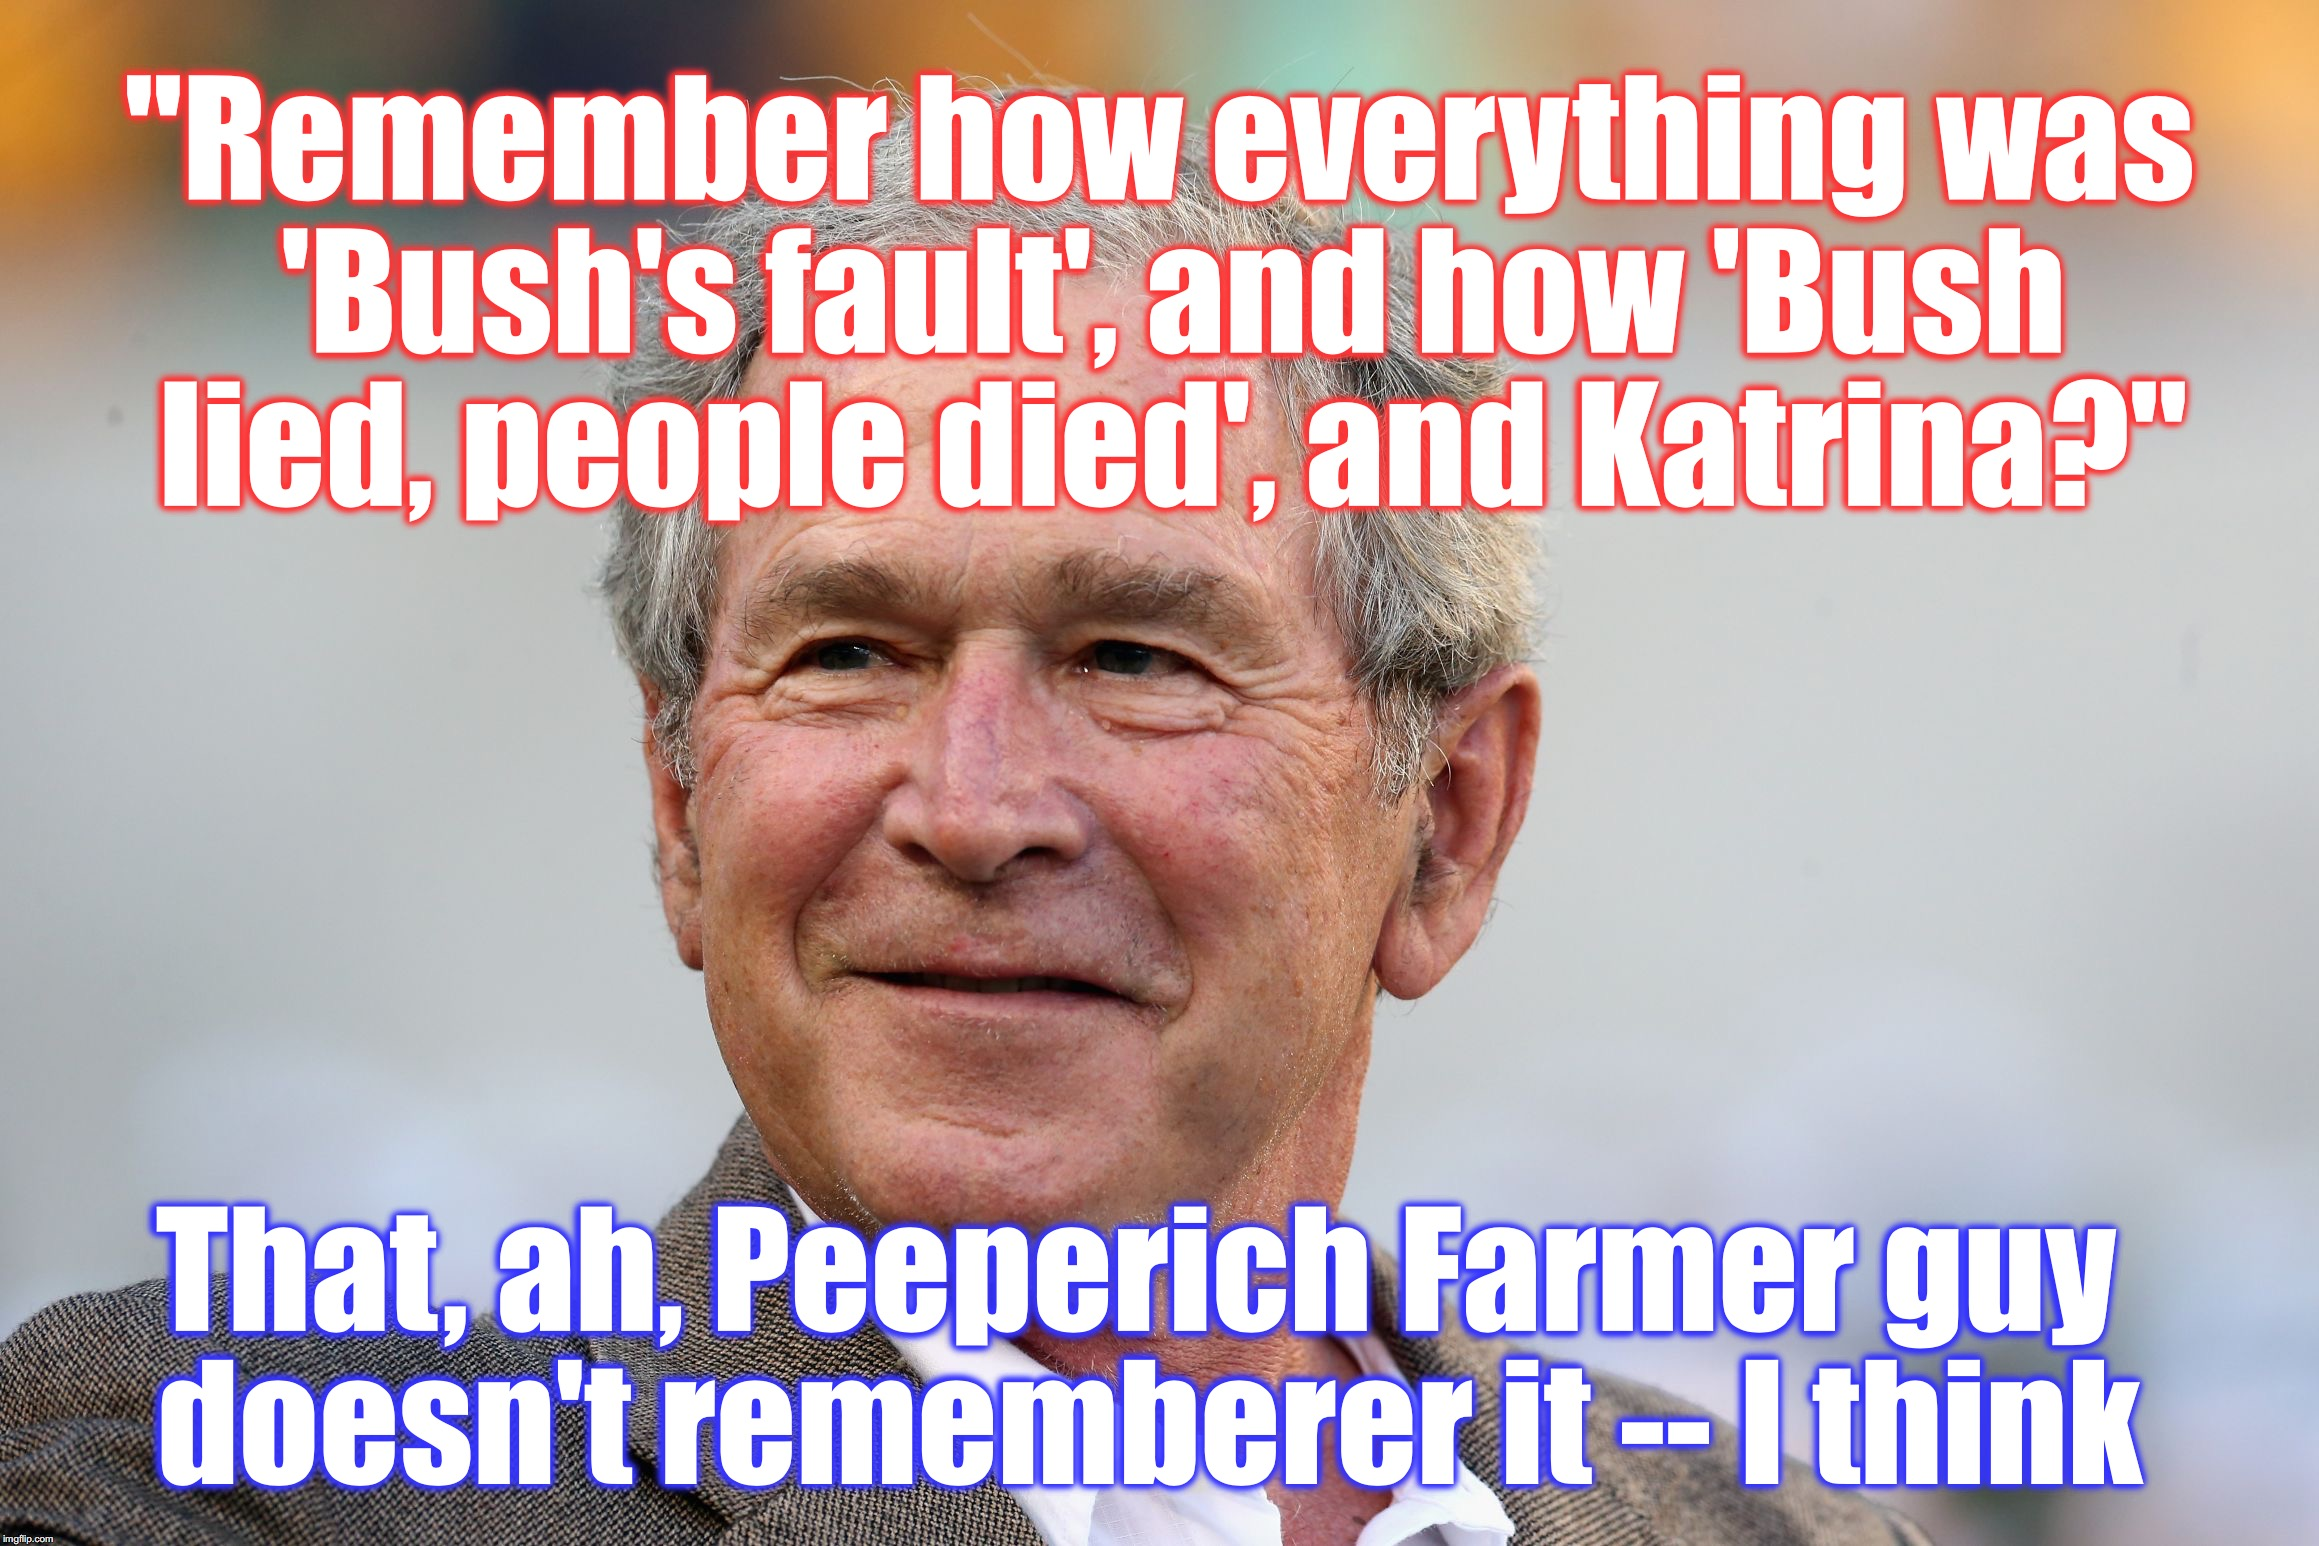 """Remember how everything was 'Bush's fault', and how 'Bush lied, people died', and Katrina?"" That, ah, Peeperich Farmer guy doesn't remember 